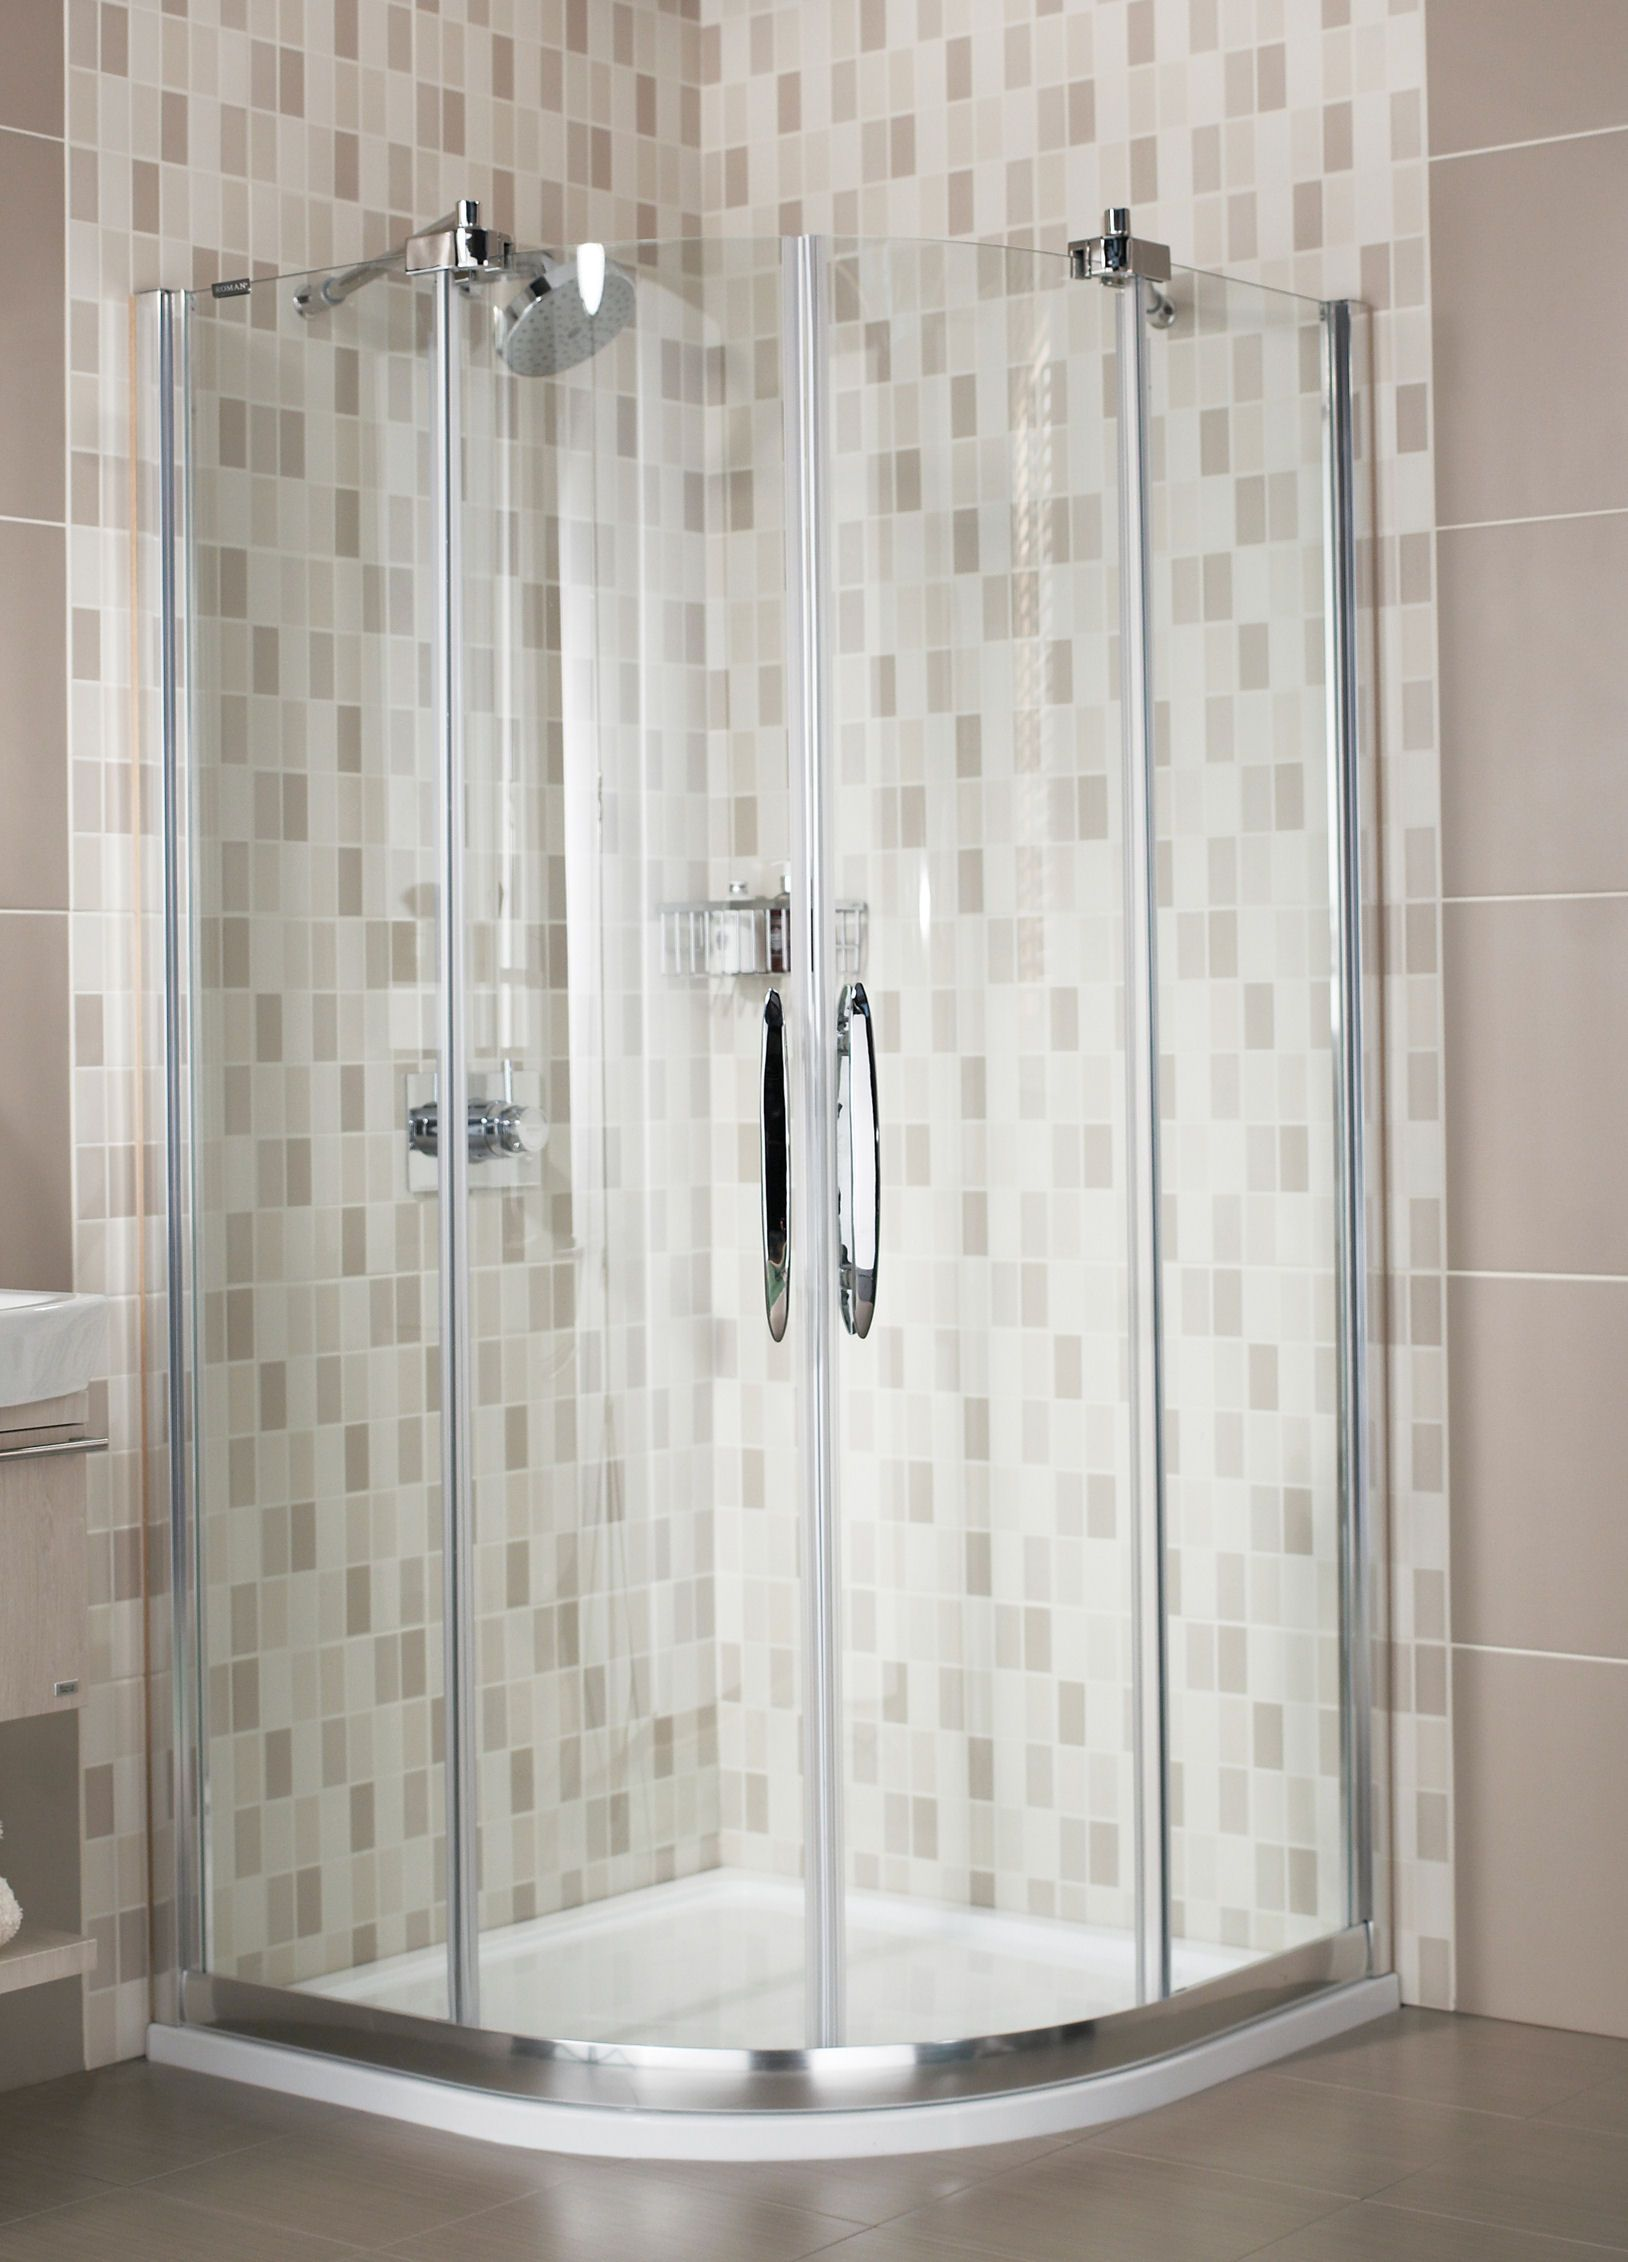 framless shower doors | Home // Shower Enclosures/Doors » Frameless ...